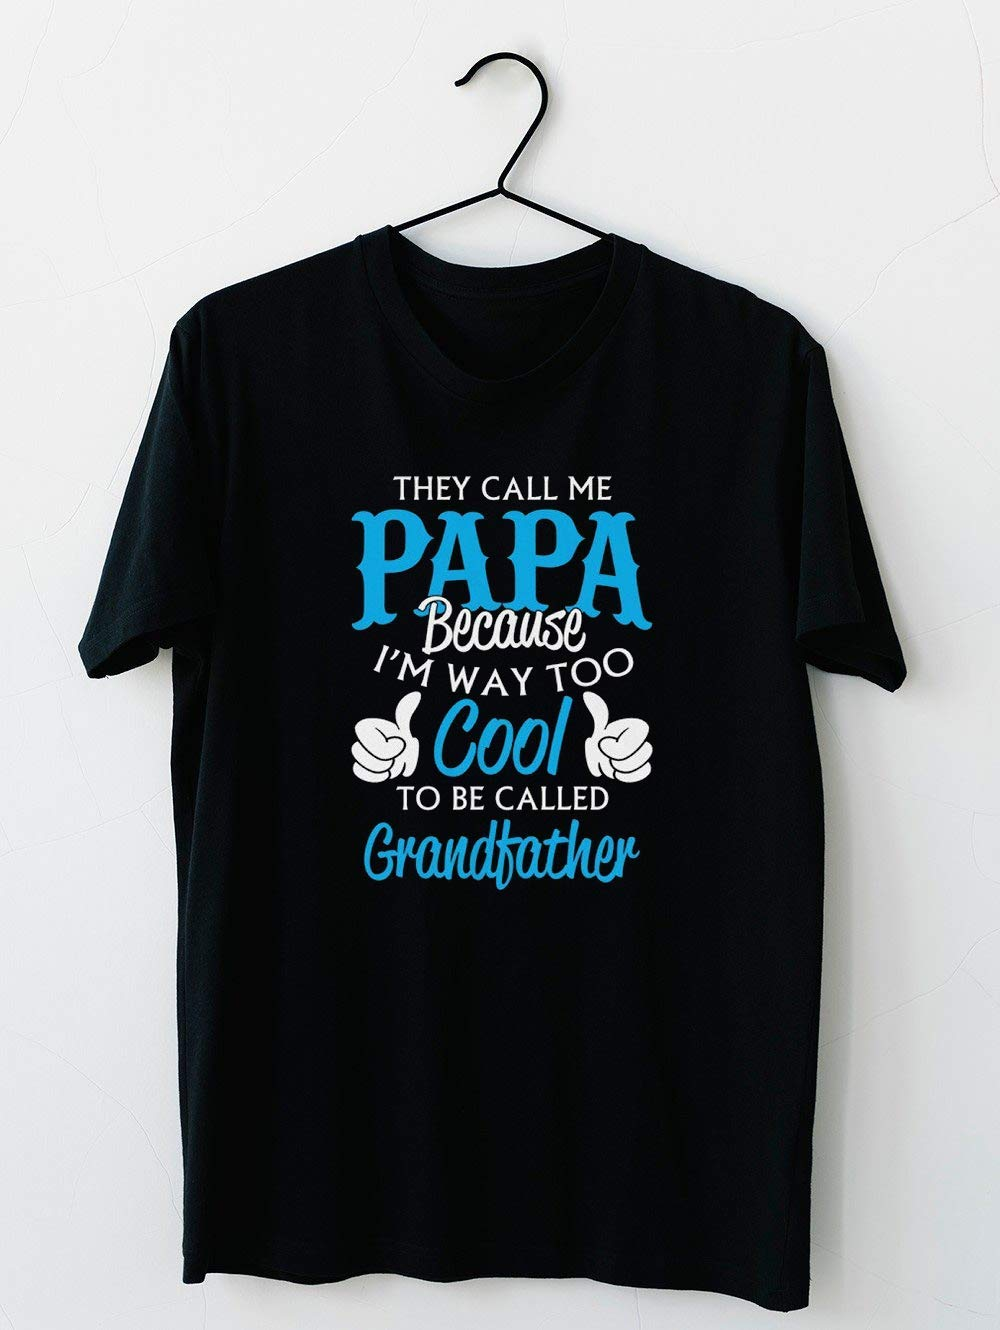 They Call Me Papa T Shirt For Grandfather Great Gift For Father T Shirt Hoodie For Men Women Unisex